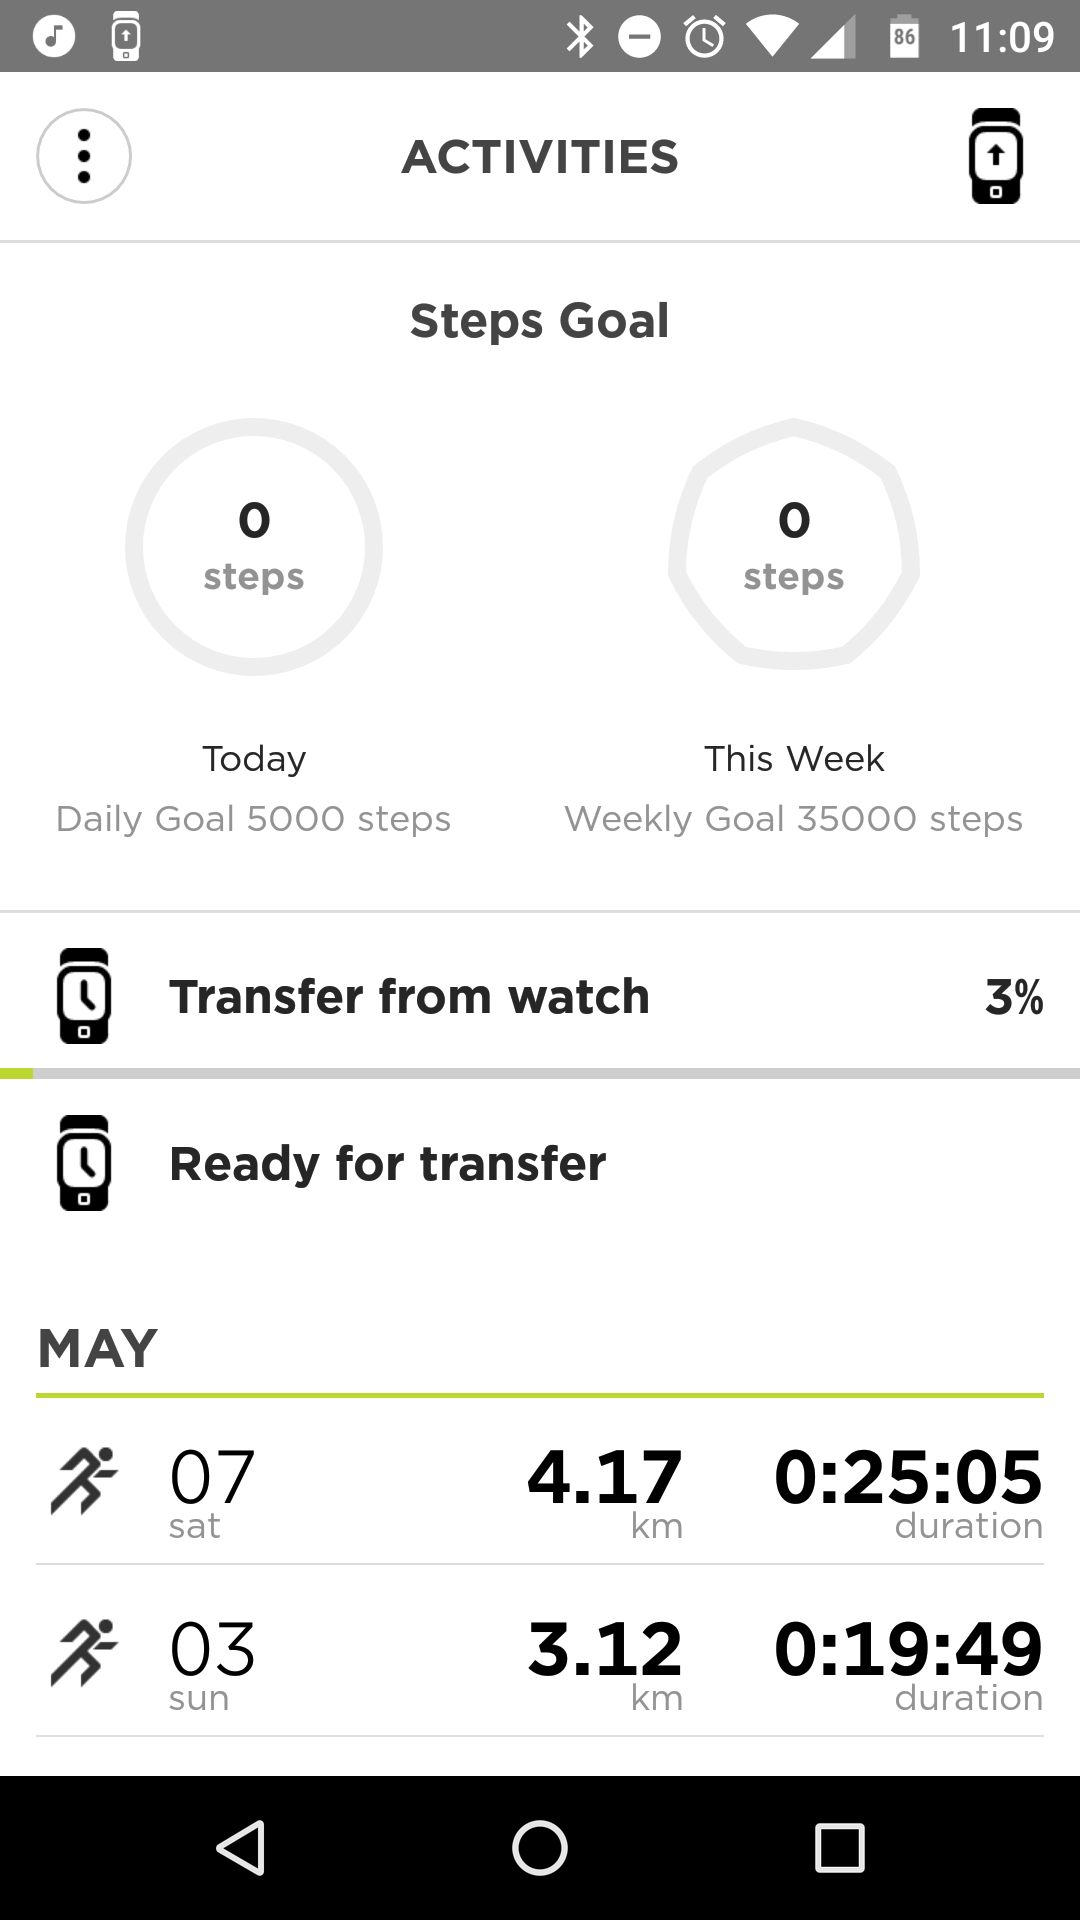 Transferring a workout from your watch